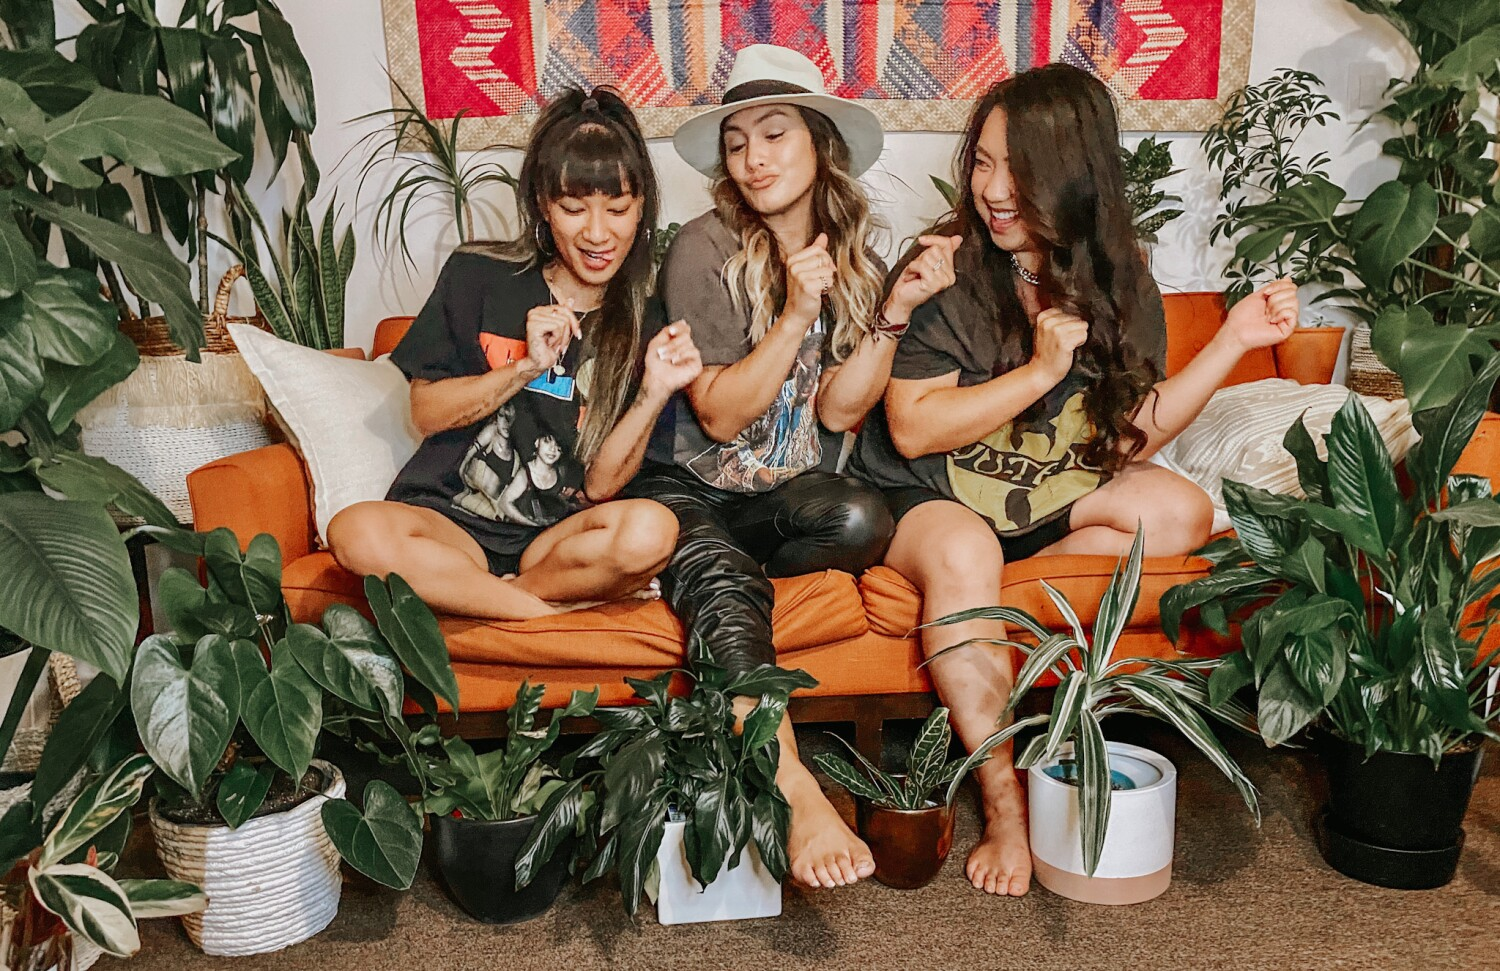 R&B-loving Filipina American friends launch the plant shop for 'fly plant mamas and papas'